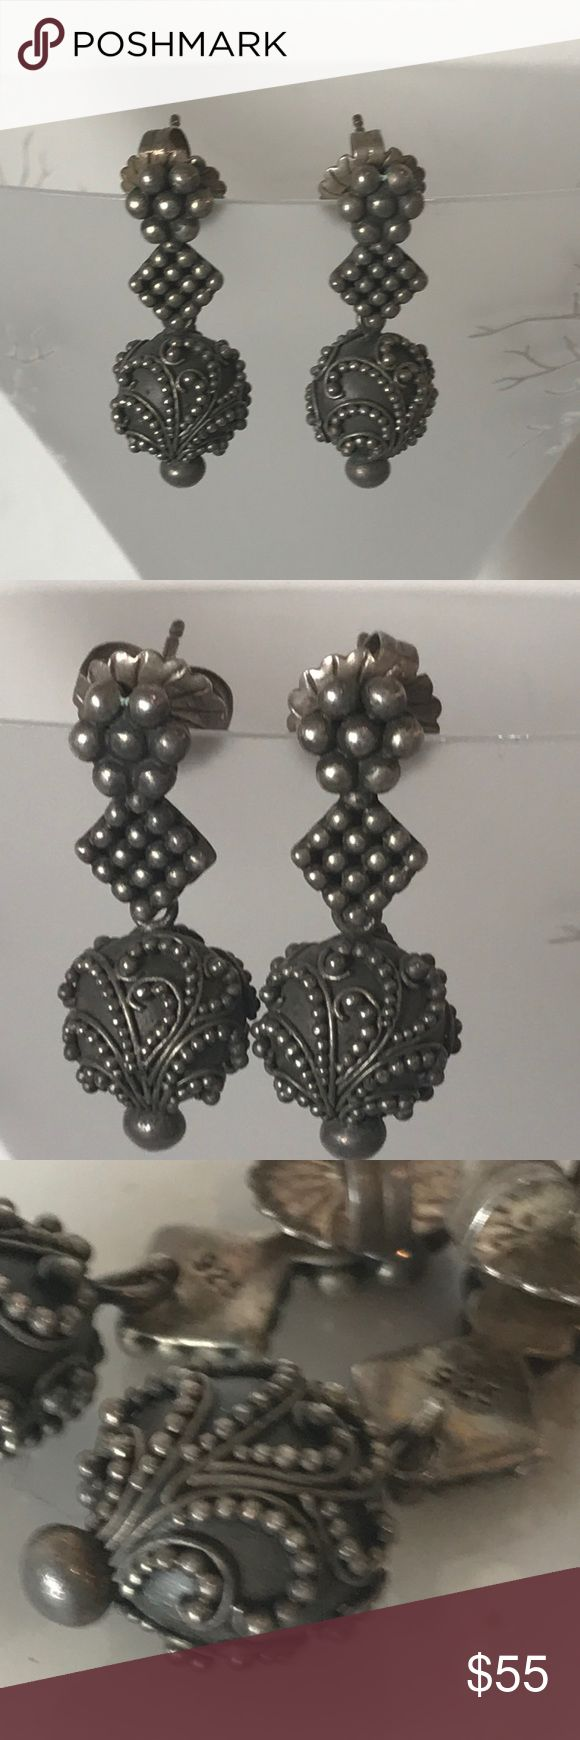 Vintage Lois Hill SS 9.25 Earrings Bought at Nordstrom's & Worn Once! Lois Hill Jewelry Earrings